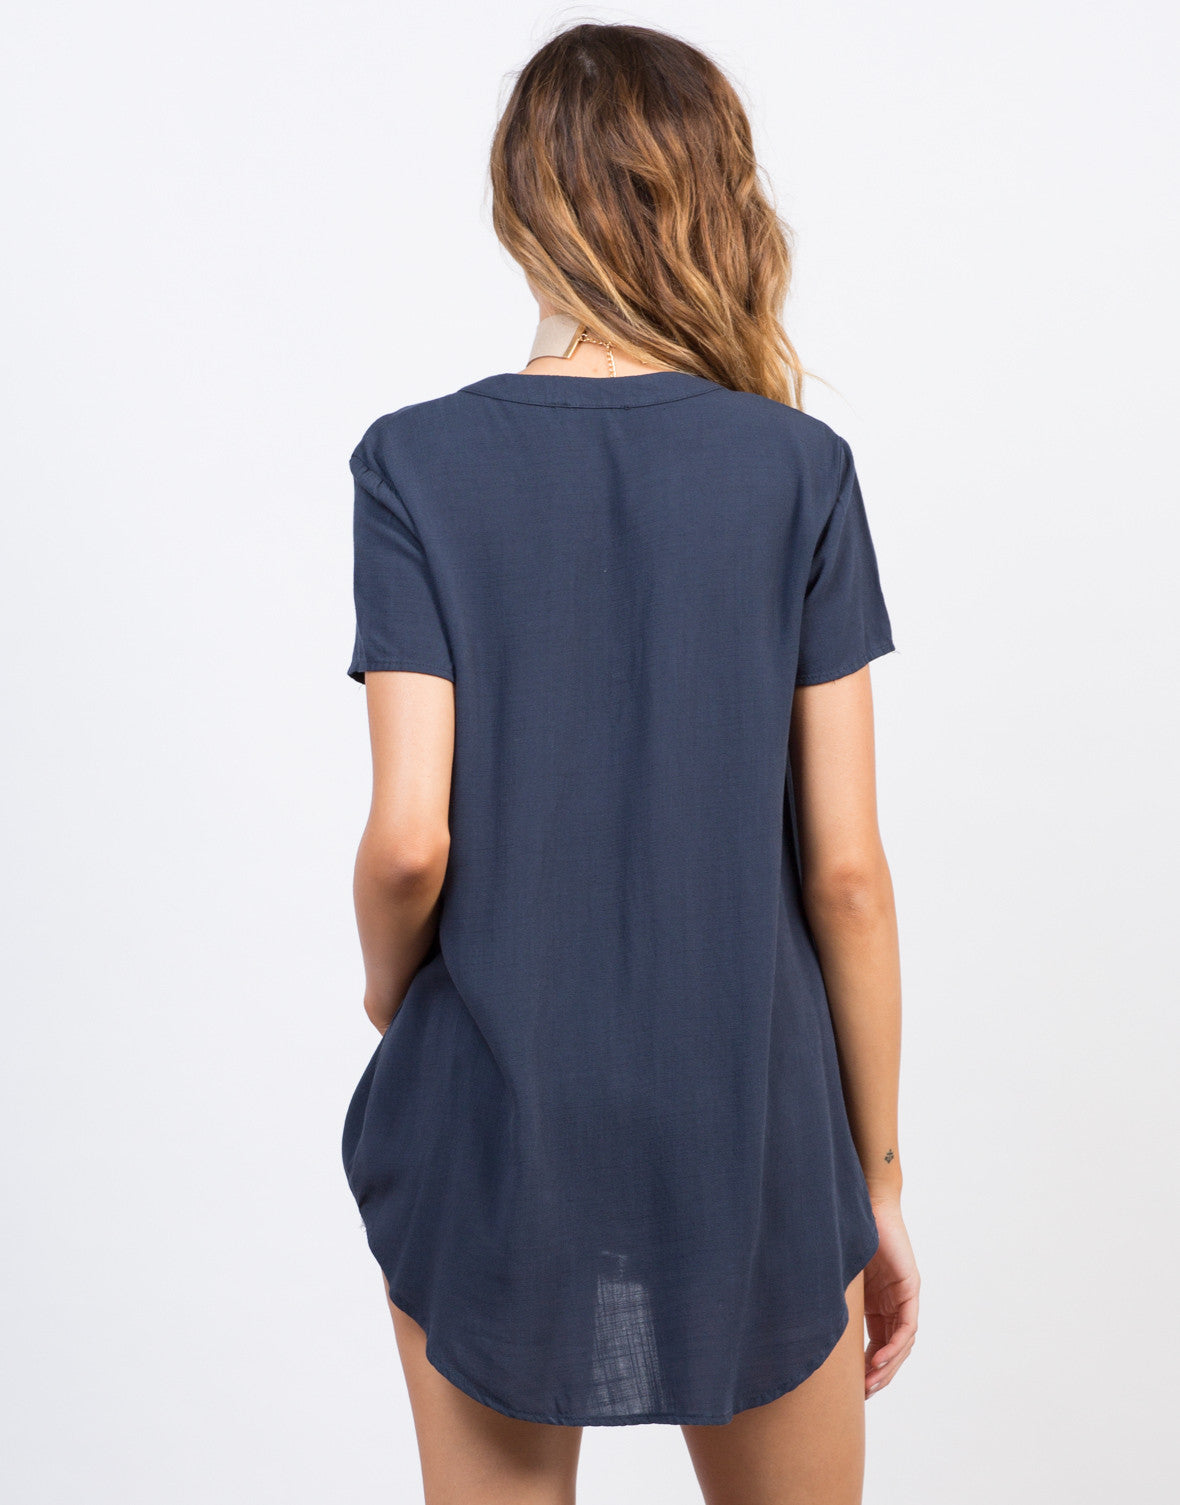 Back View of Flowy Lace-Up Blouse